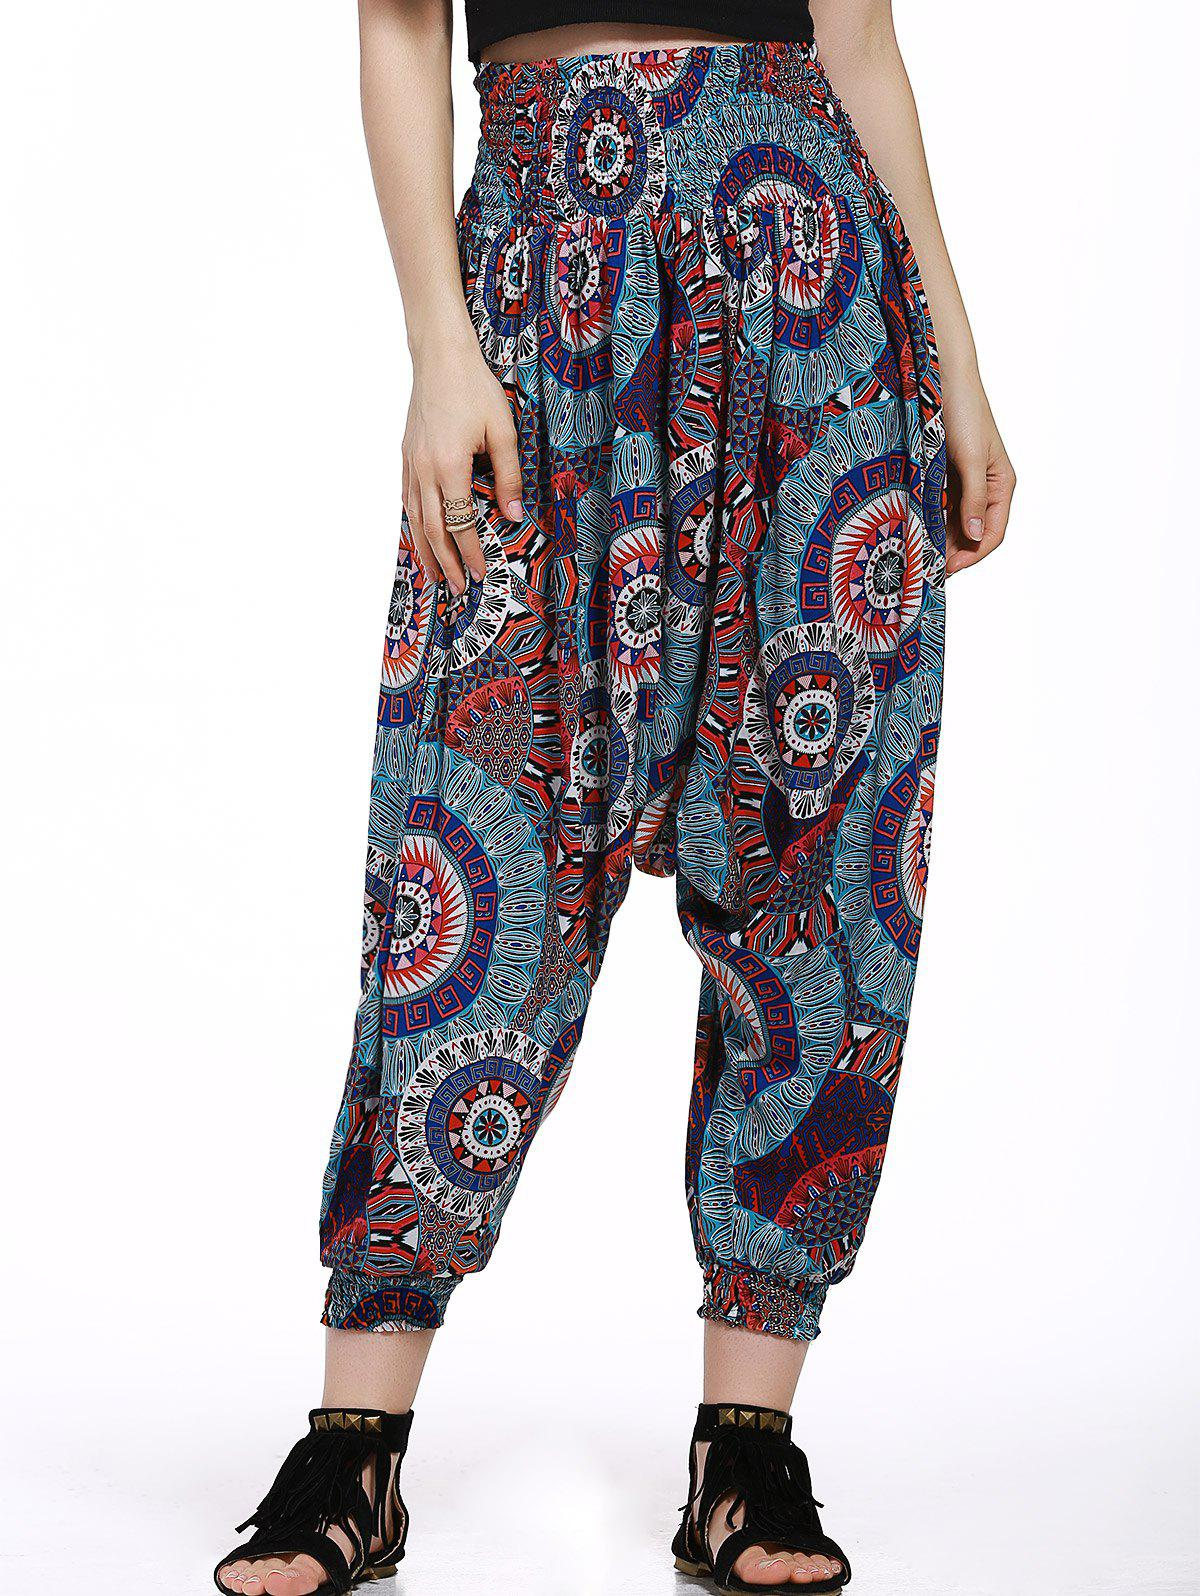 Stylish Relaxed Floral Print Pants For Women